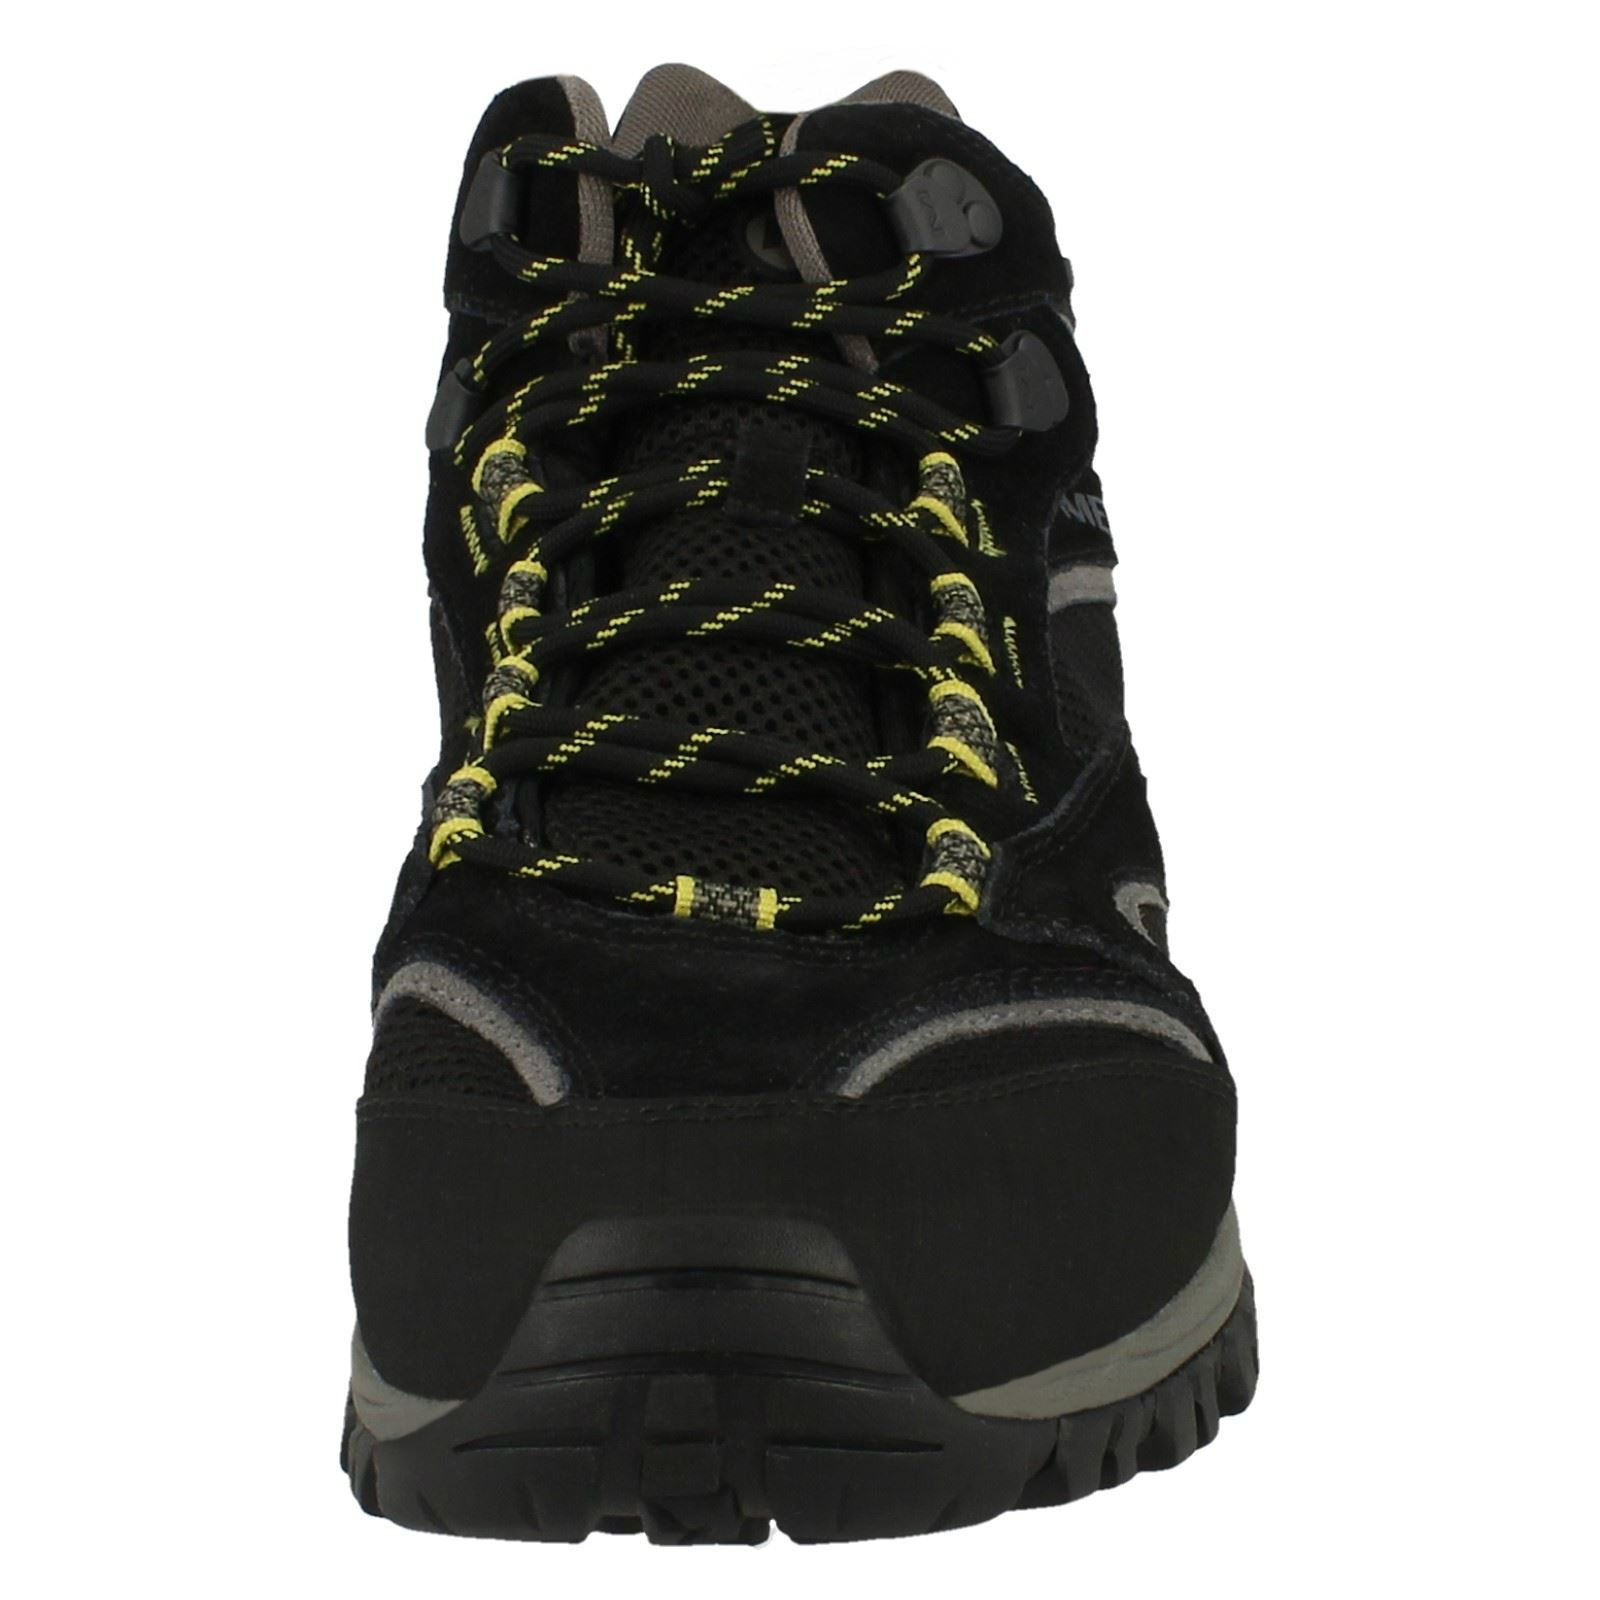 thumbnail 3 - Mens-Merrell-Waterproof-Walking-Boots-039-Phoenix-Mid-039